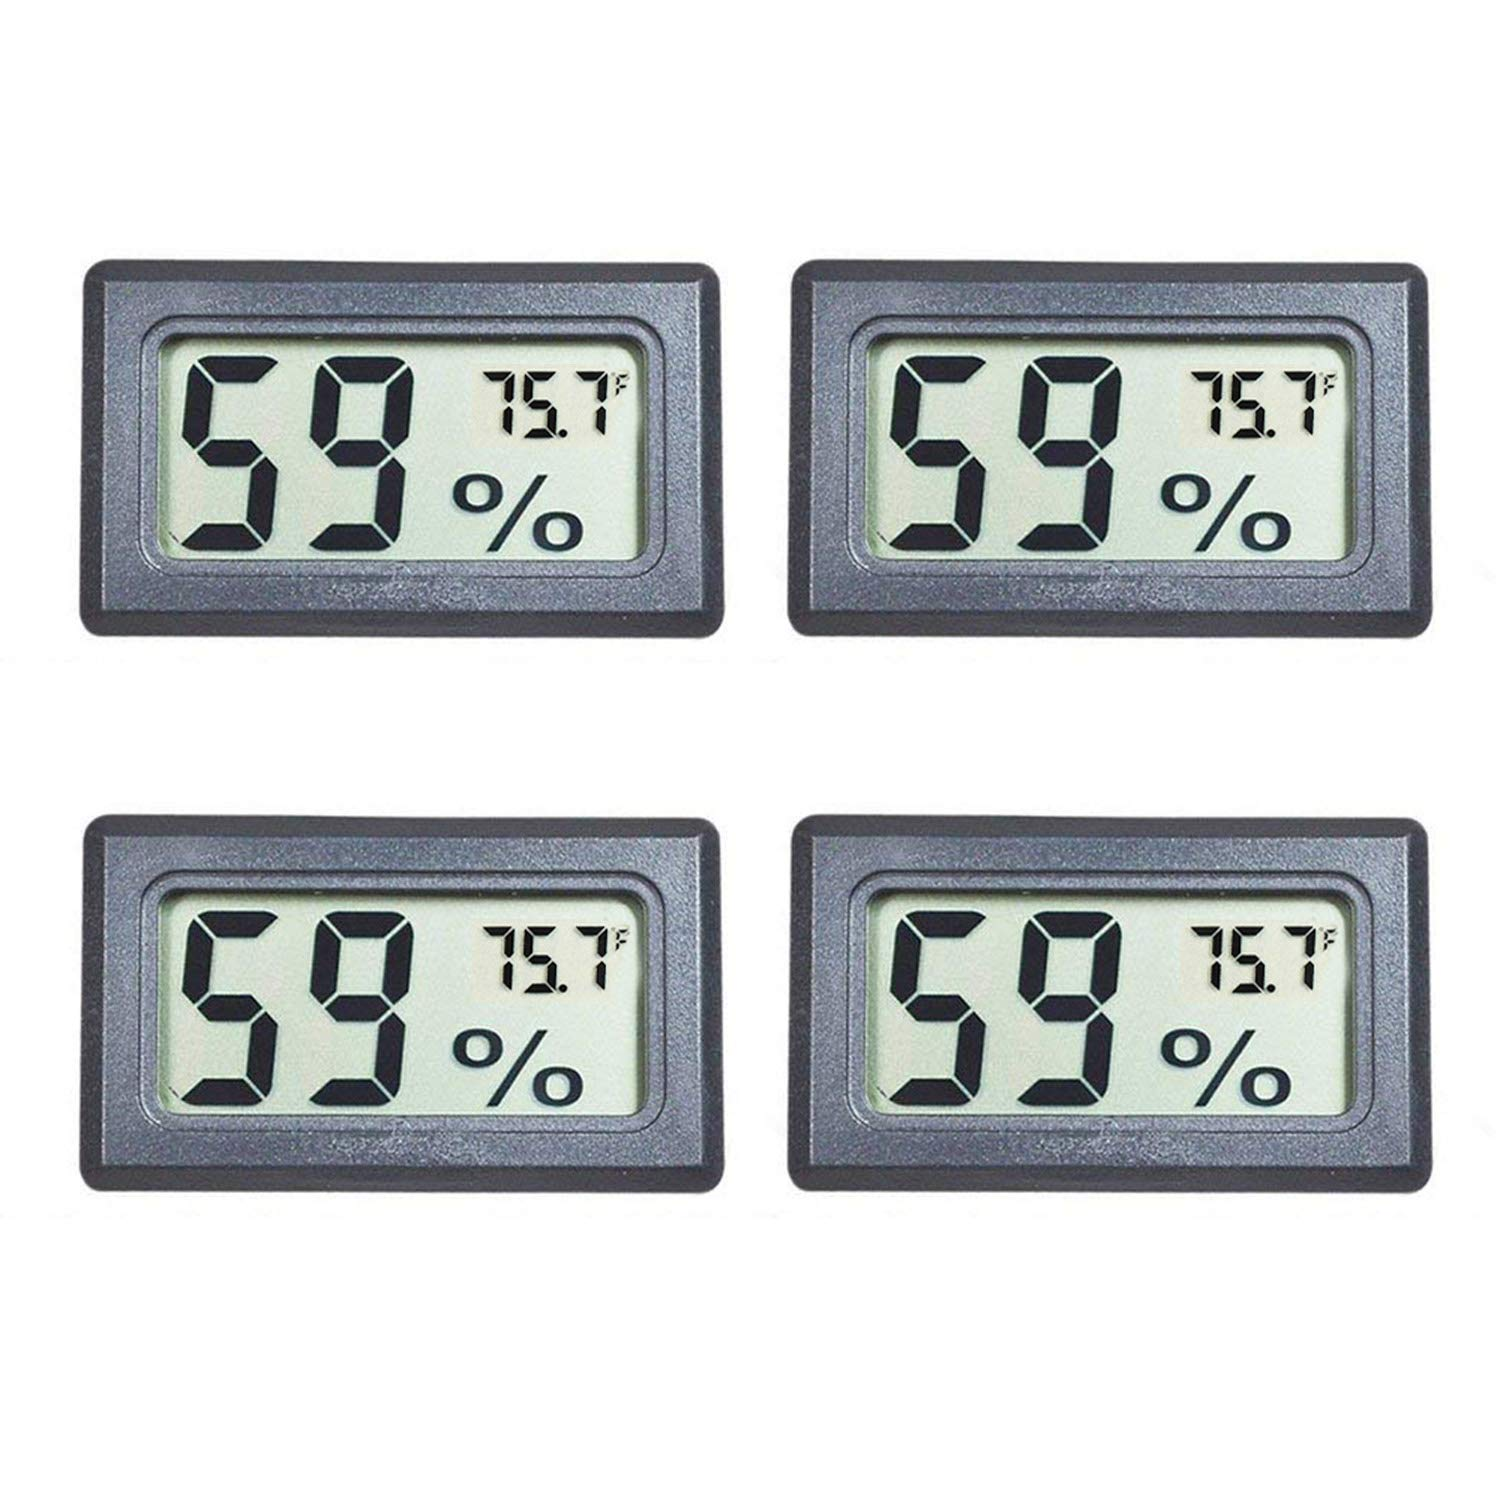 Veanic 4-Pack Mini Digital Electronic Temperature Humidity Meters Gauge Indoor Thermometer Hygrometer LCD Display…